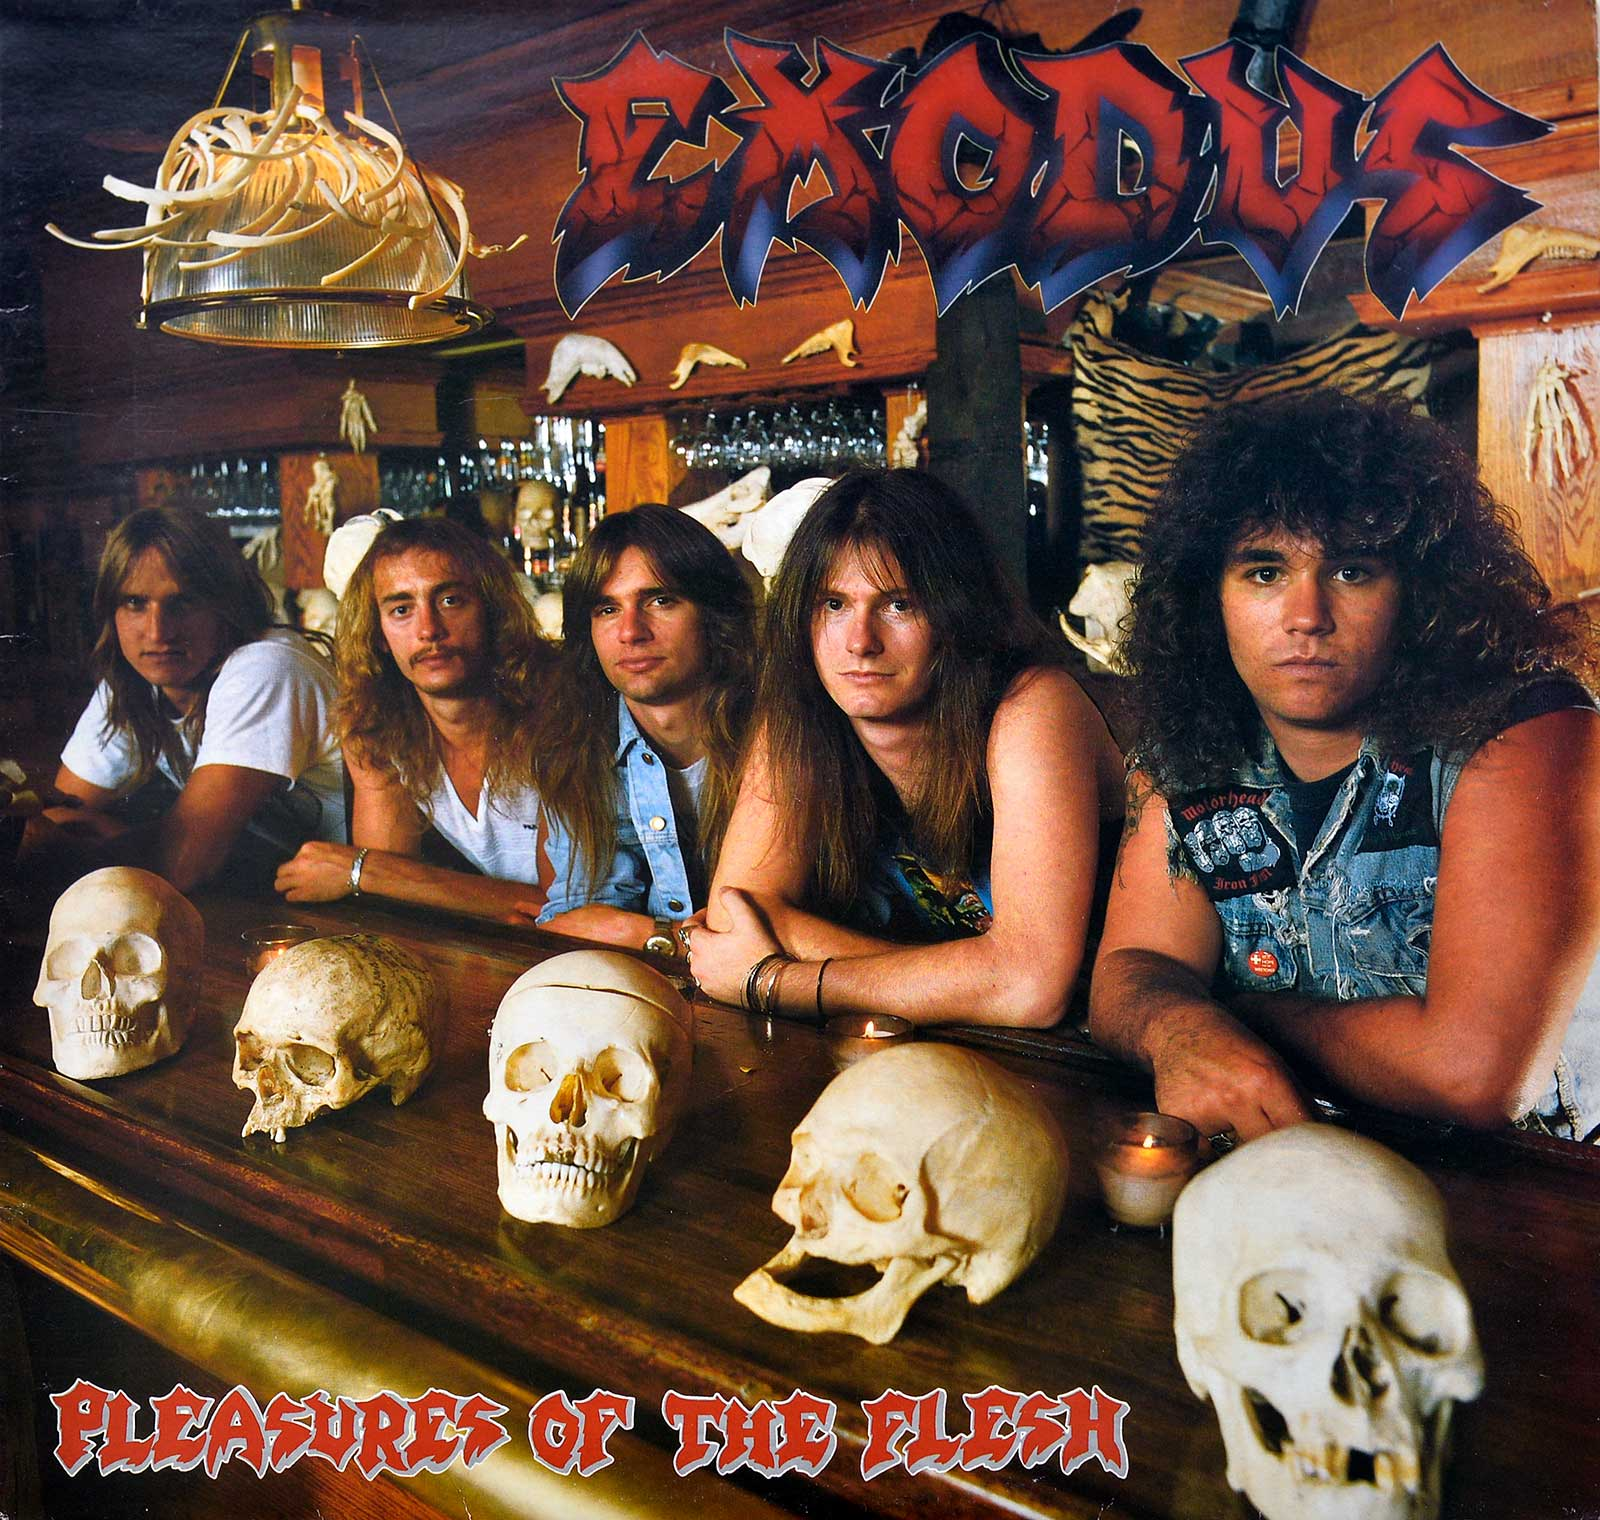 large photo of the album front cover of: Pleasures of the Flesh by Exodos